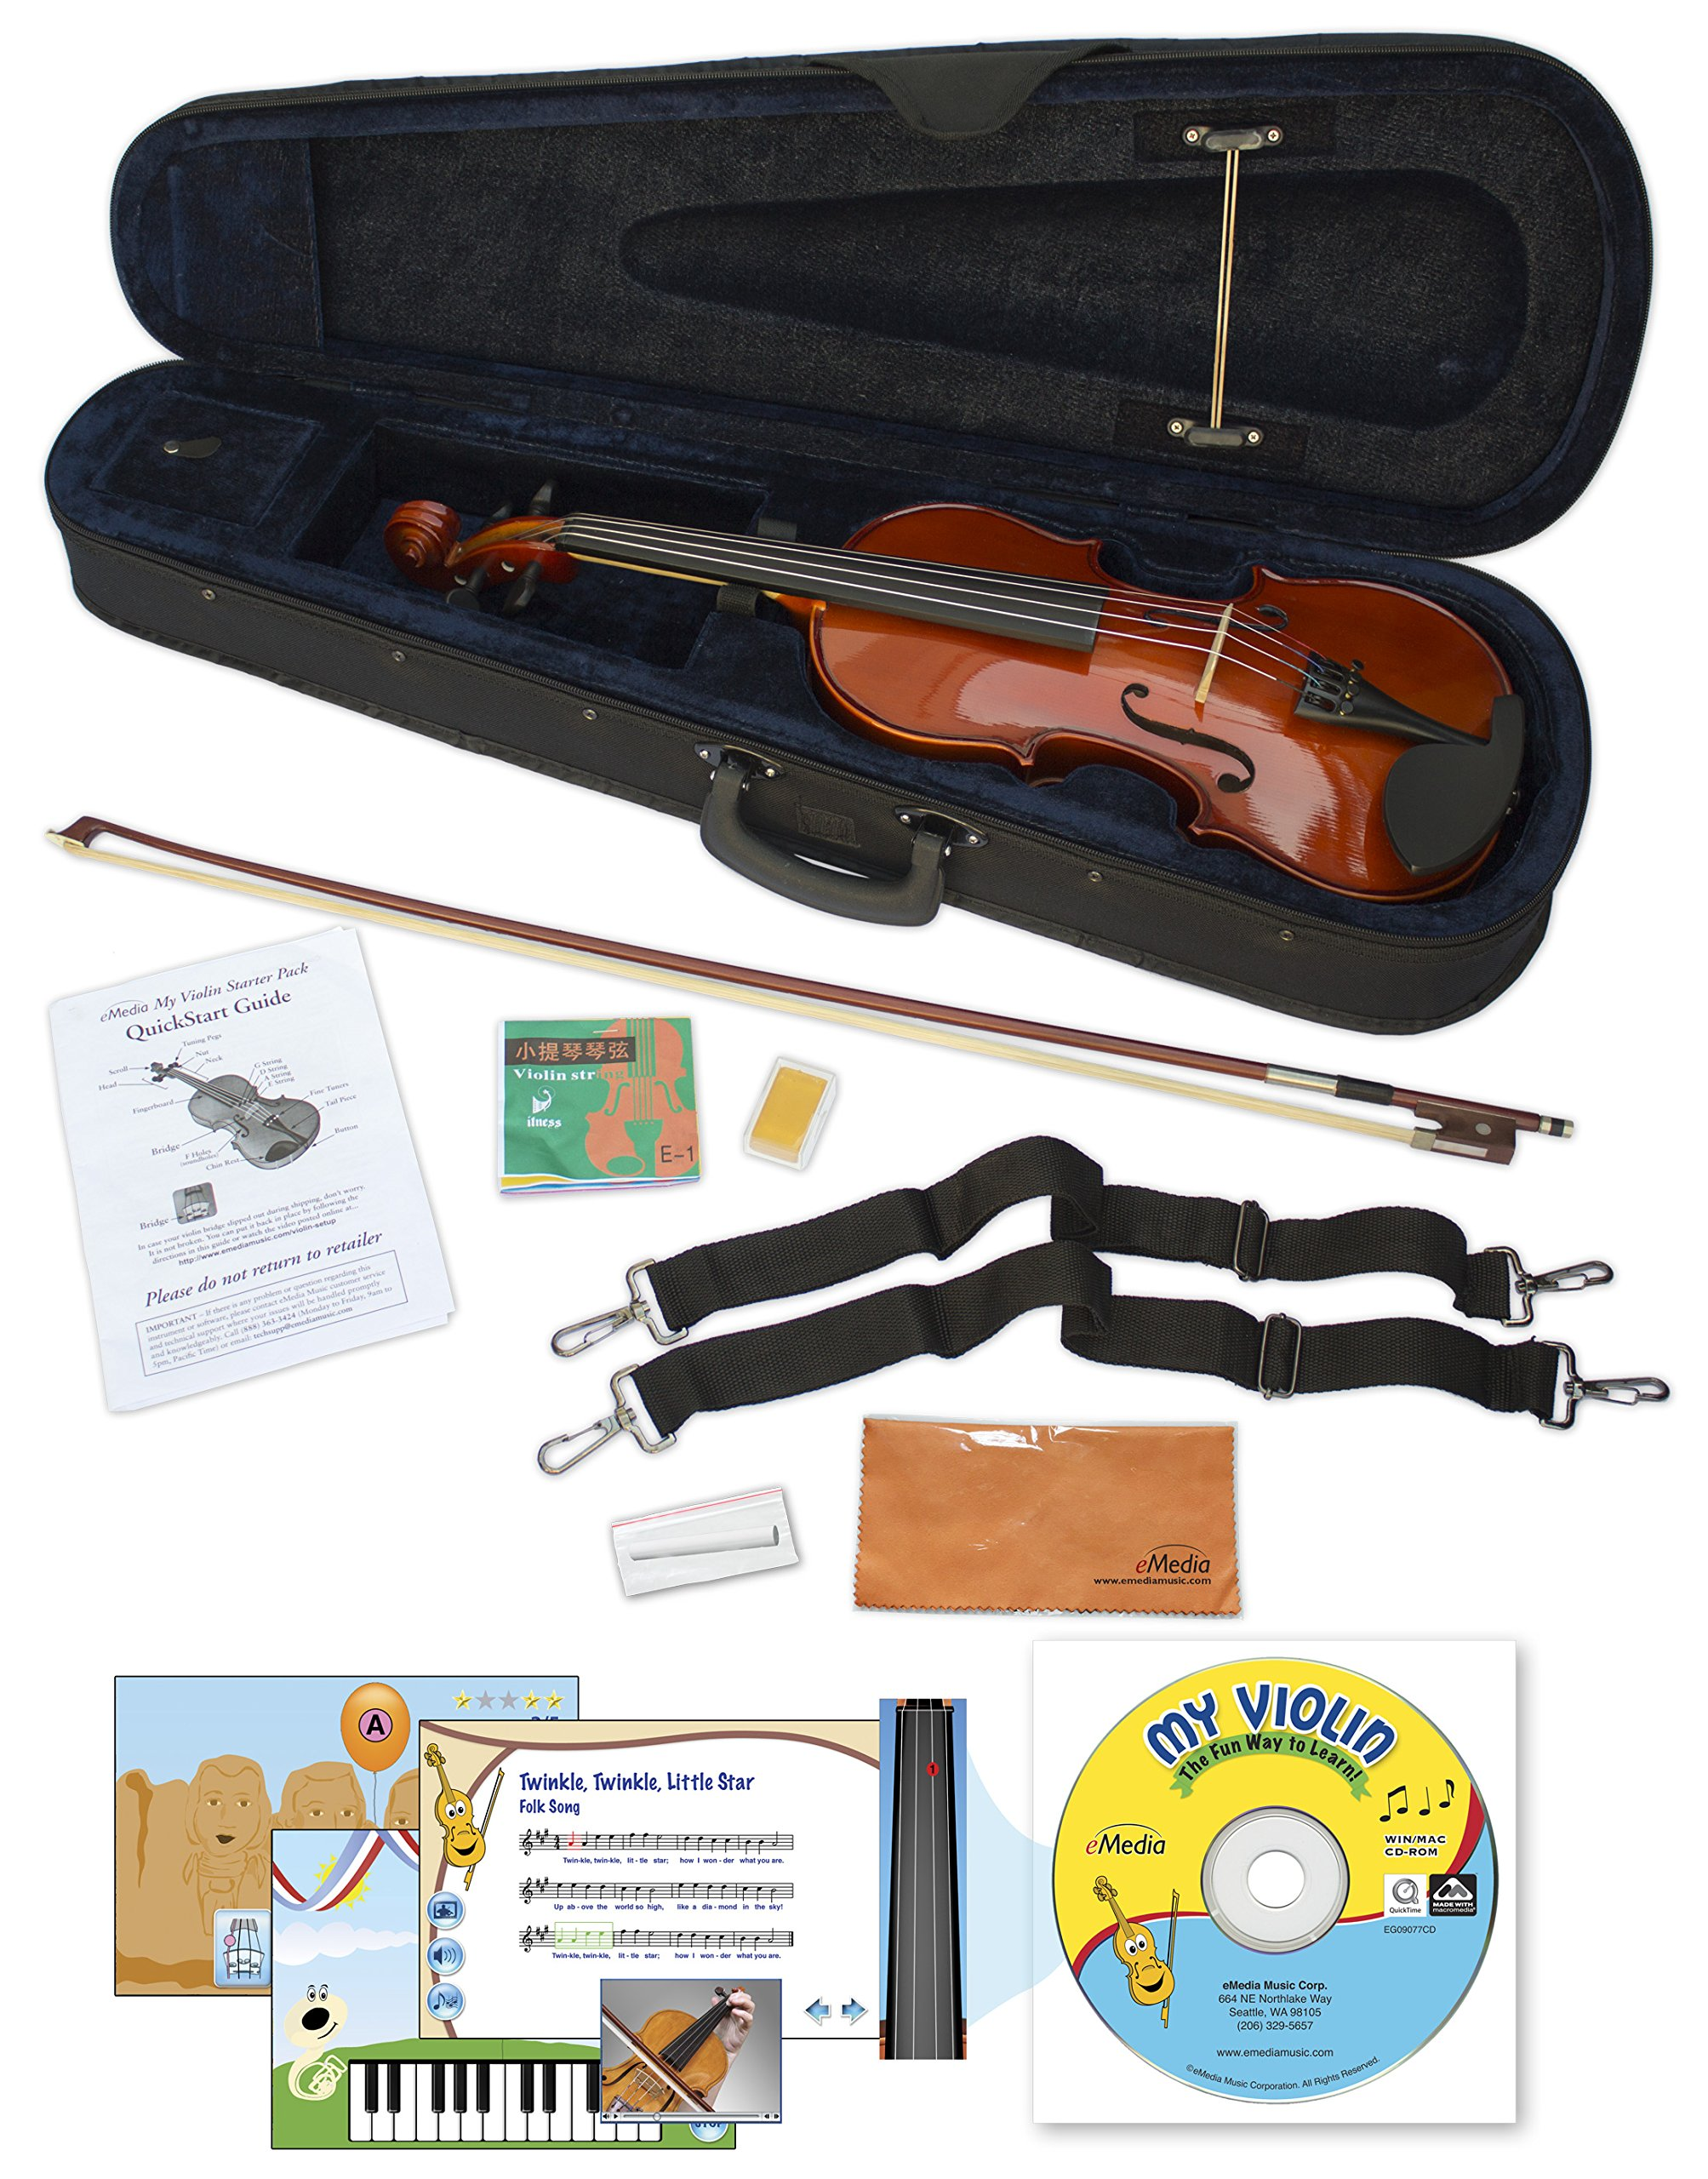 eMedia My Violin Starter Pack for Kids - 1/8 Size Violin (5 Sizes Available) - Includes Violin Lesson Software, Case, Bow, Chalk, Rosin, Straps, Polishing Cloth, and Strings (EV05161)